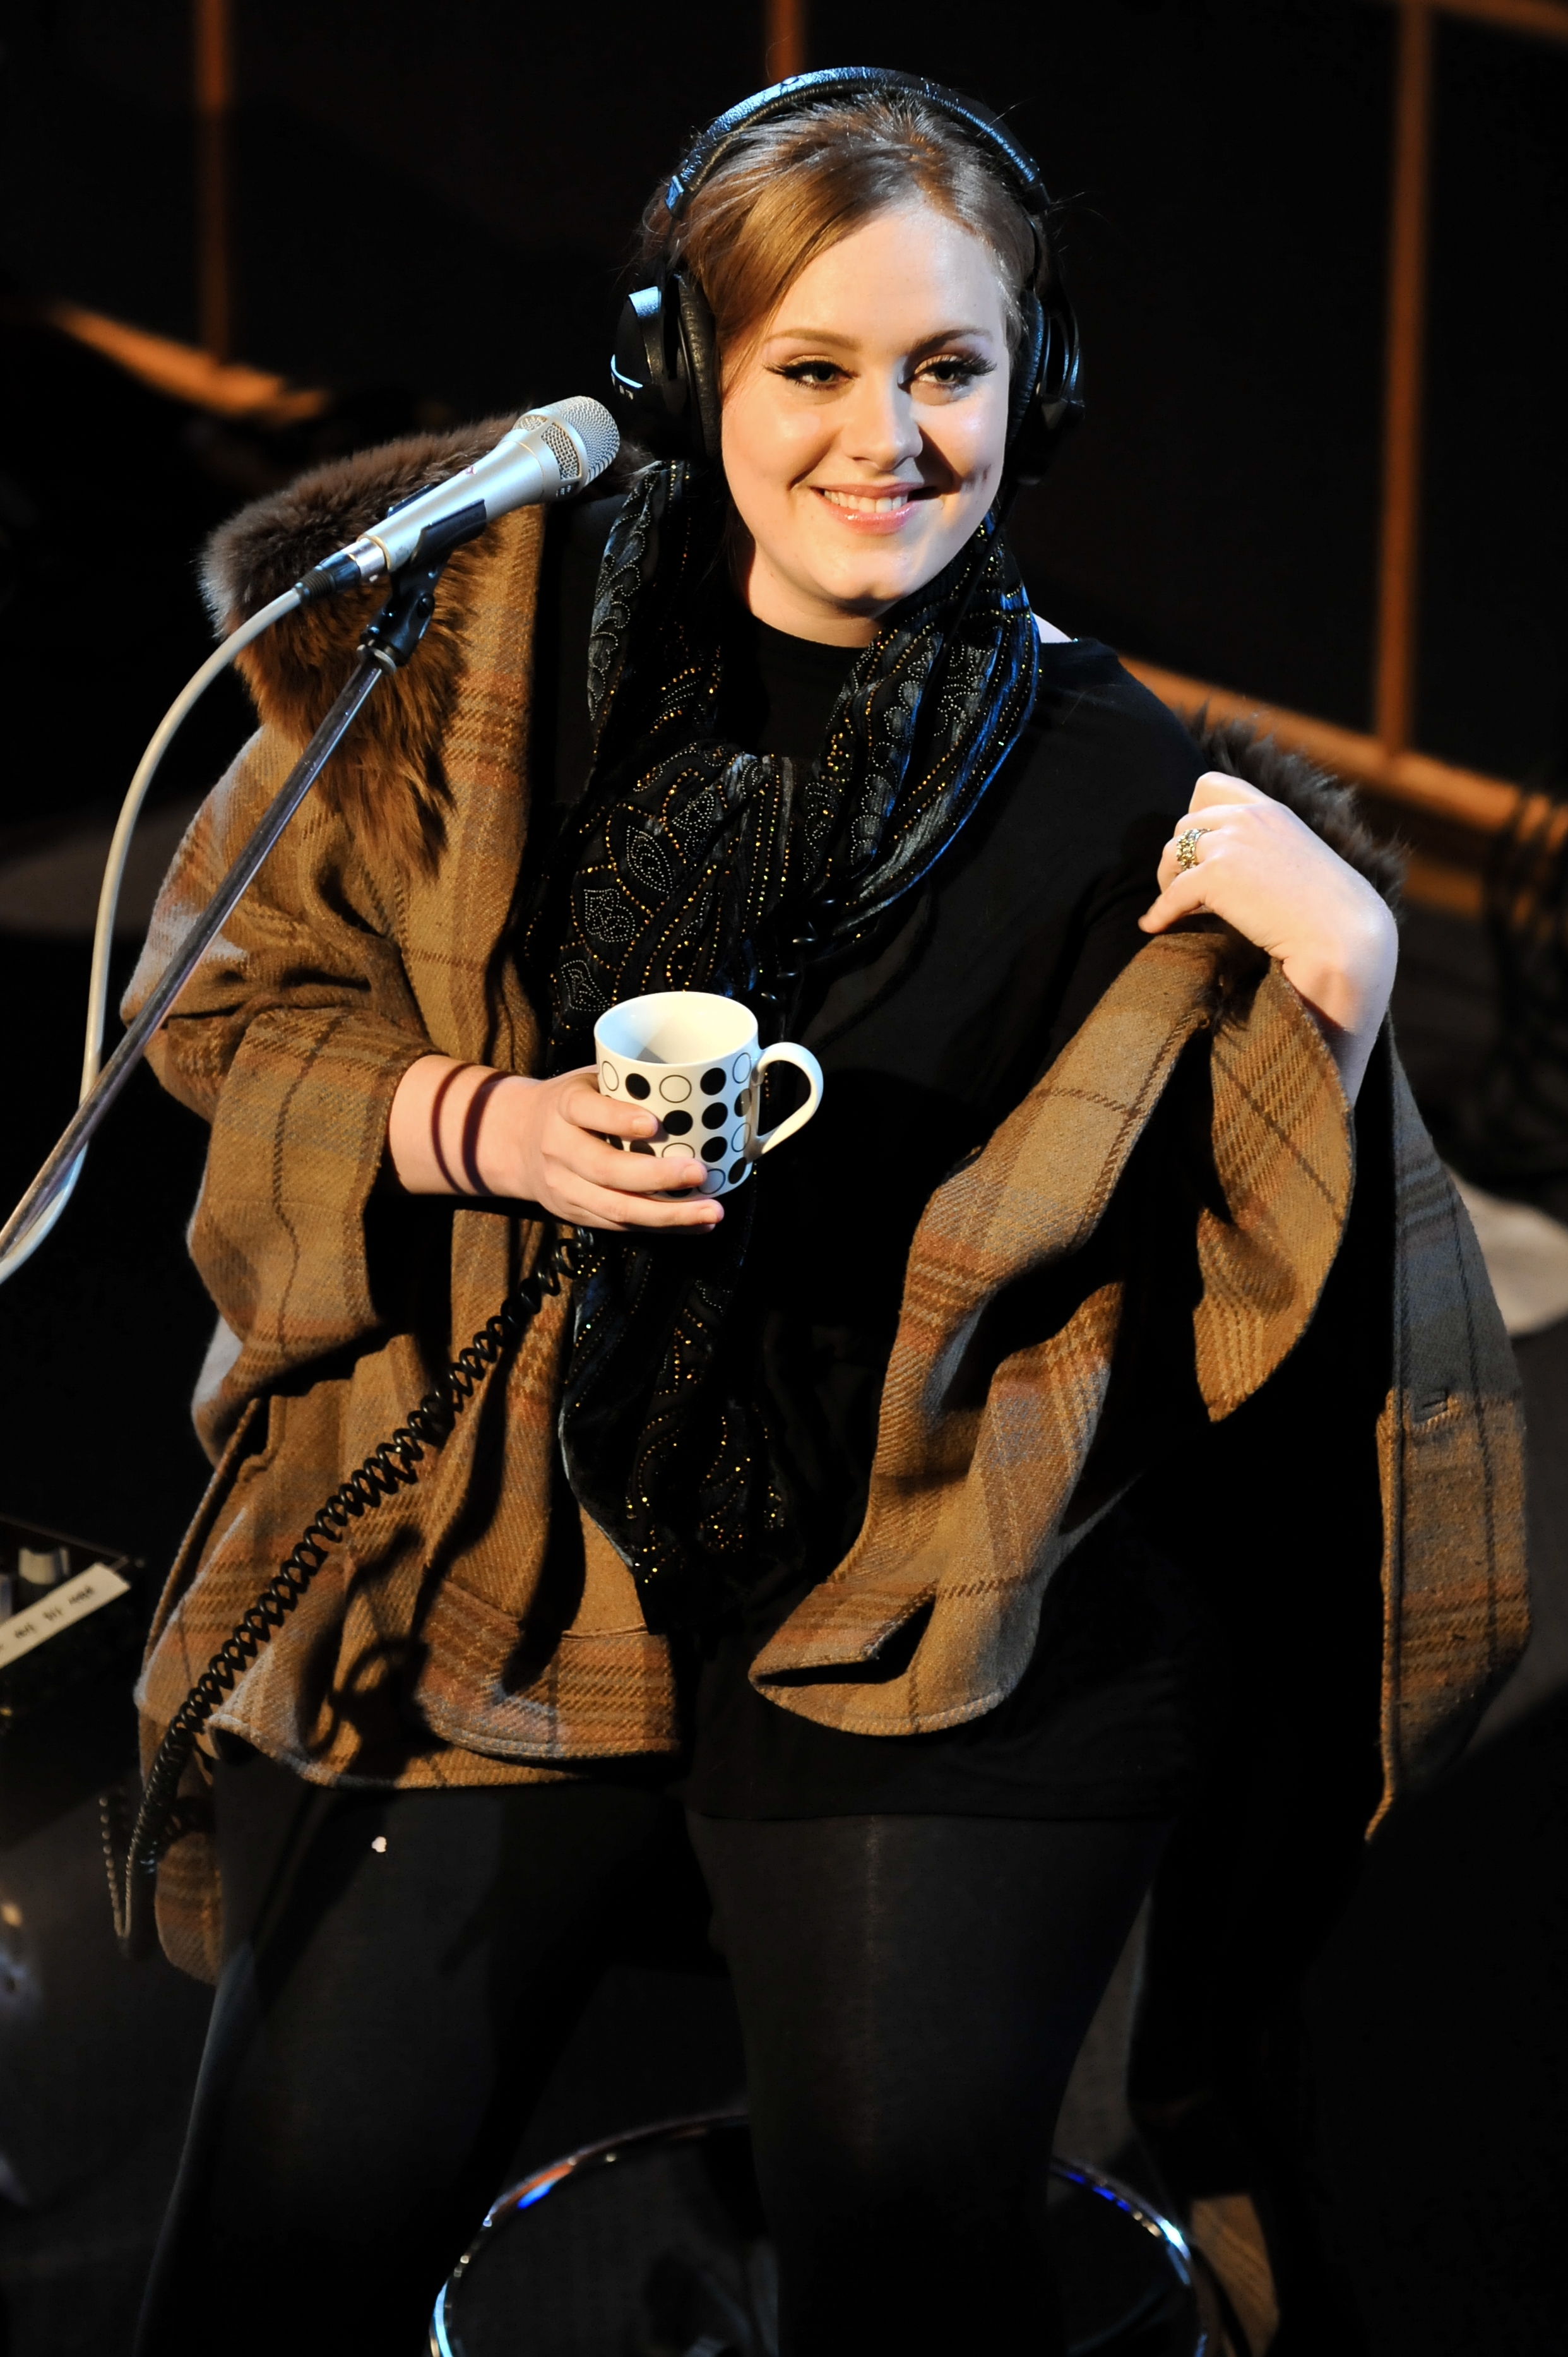 Adele performs a Live Lounge Special for BBC Radio 1 at BBC Maida Vale Studios in London on Jan. 27, 2011.